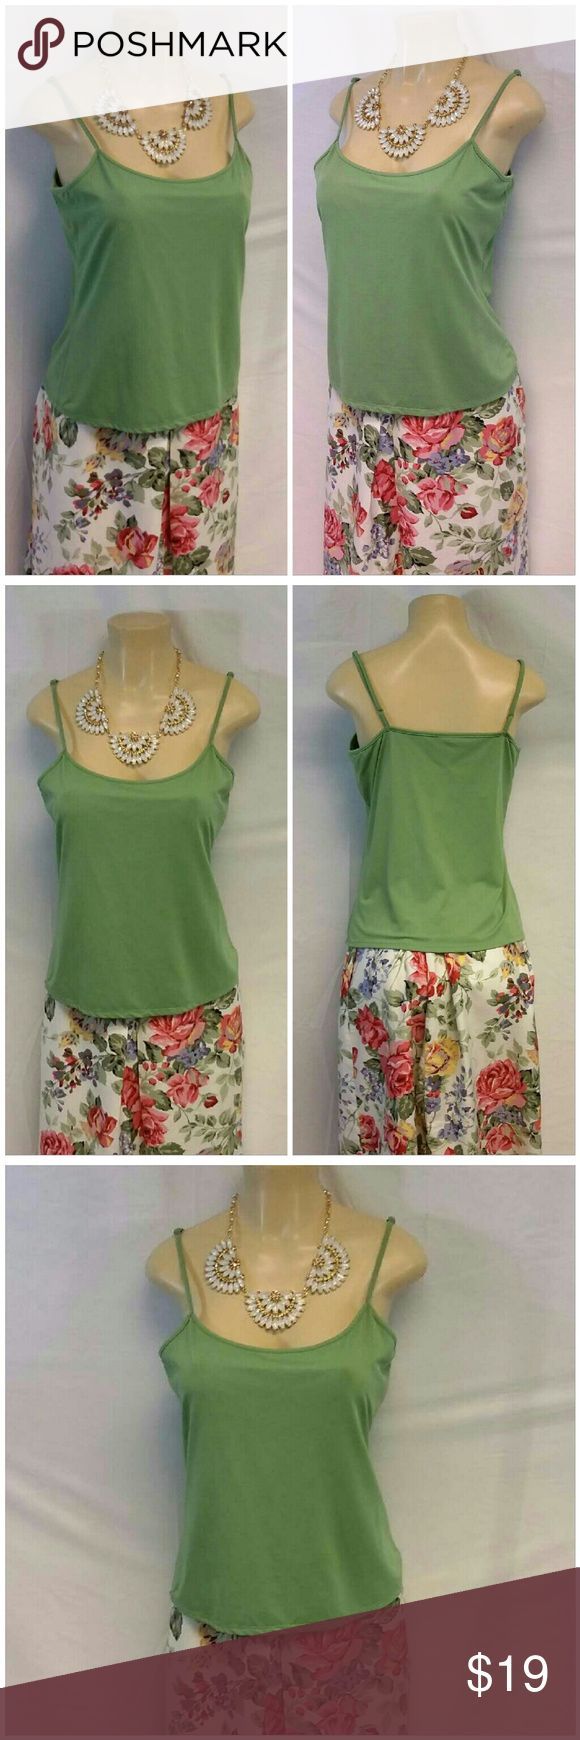 "HILLARY & HANSEN Green Cami size XL HILLARY & HANSON Green Cami, size XL See Measurements,  adjustable straps, shelf bra, very stretchy, machine washable, approximate measurements depend on stretch and adjustable straps: 23"" length shoulder to hem, 18"" minimum bust laying flat but stretches. A staple in every wardrobe. Hillard & Hanson Tops Camisoles"